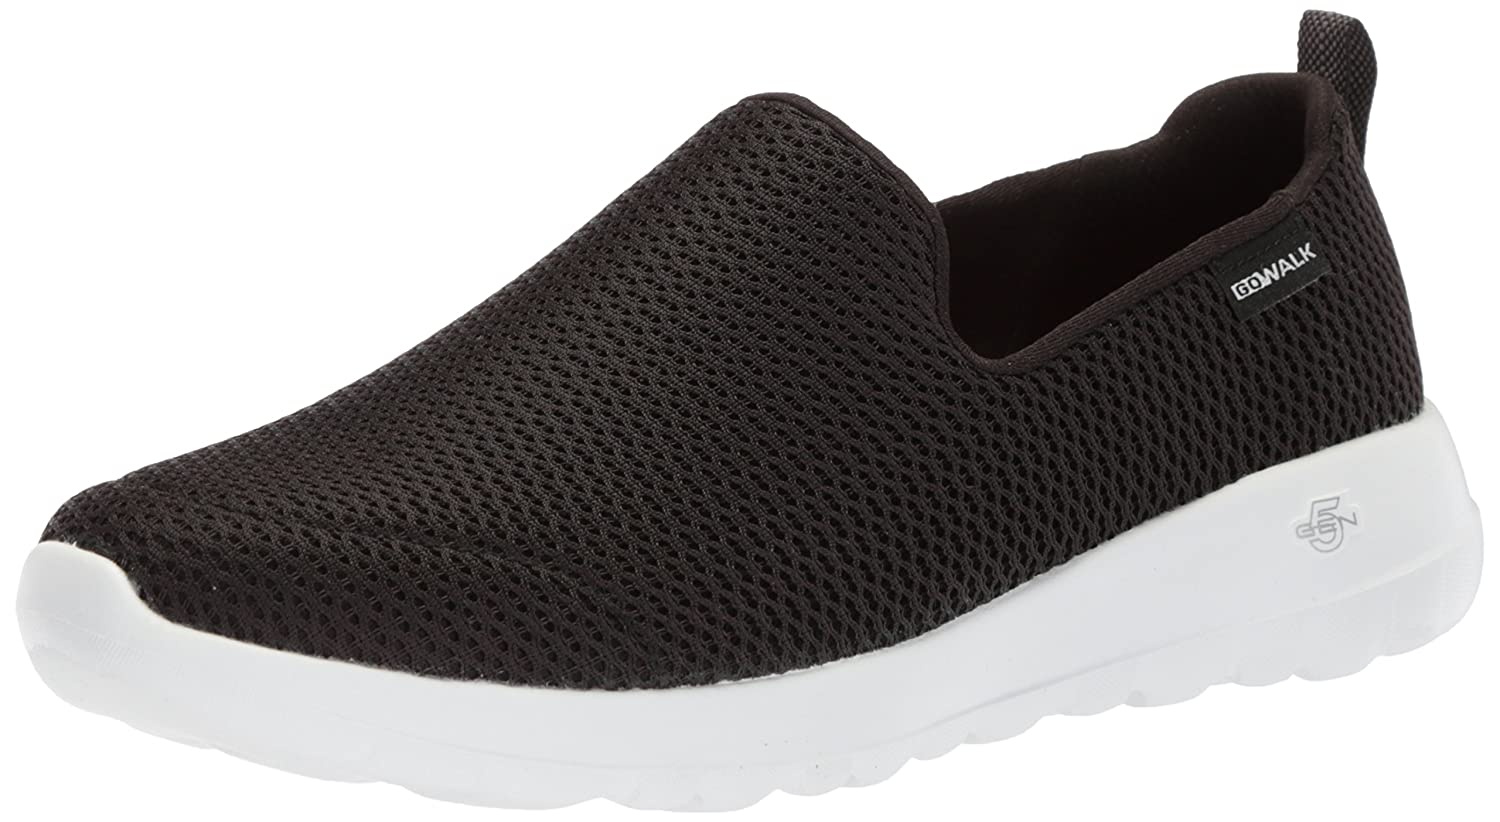 Skechers Women's Go Joy Walking Shoe B072FBQ5RJ 7 B(M) US|Black/White